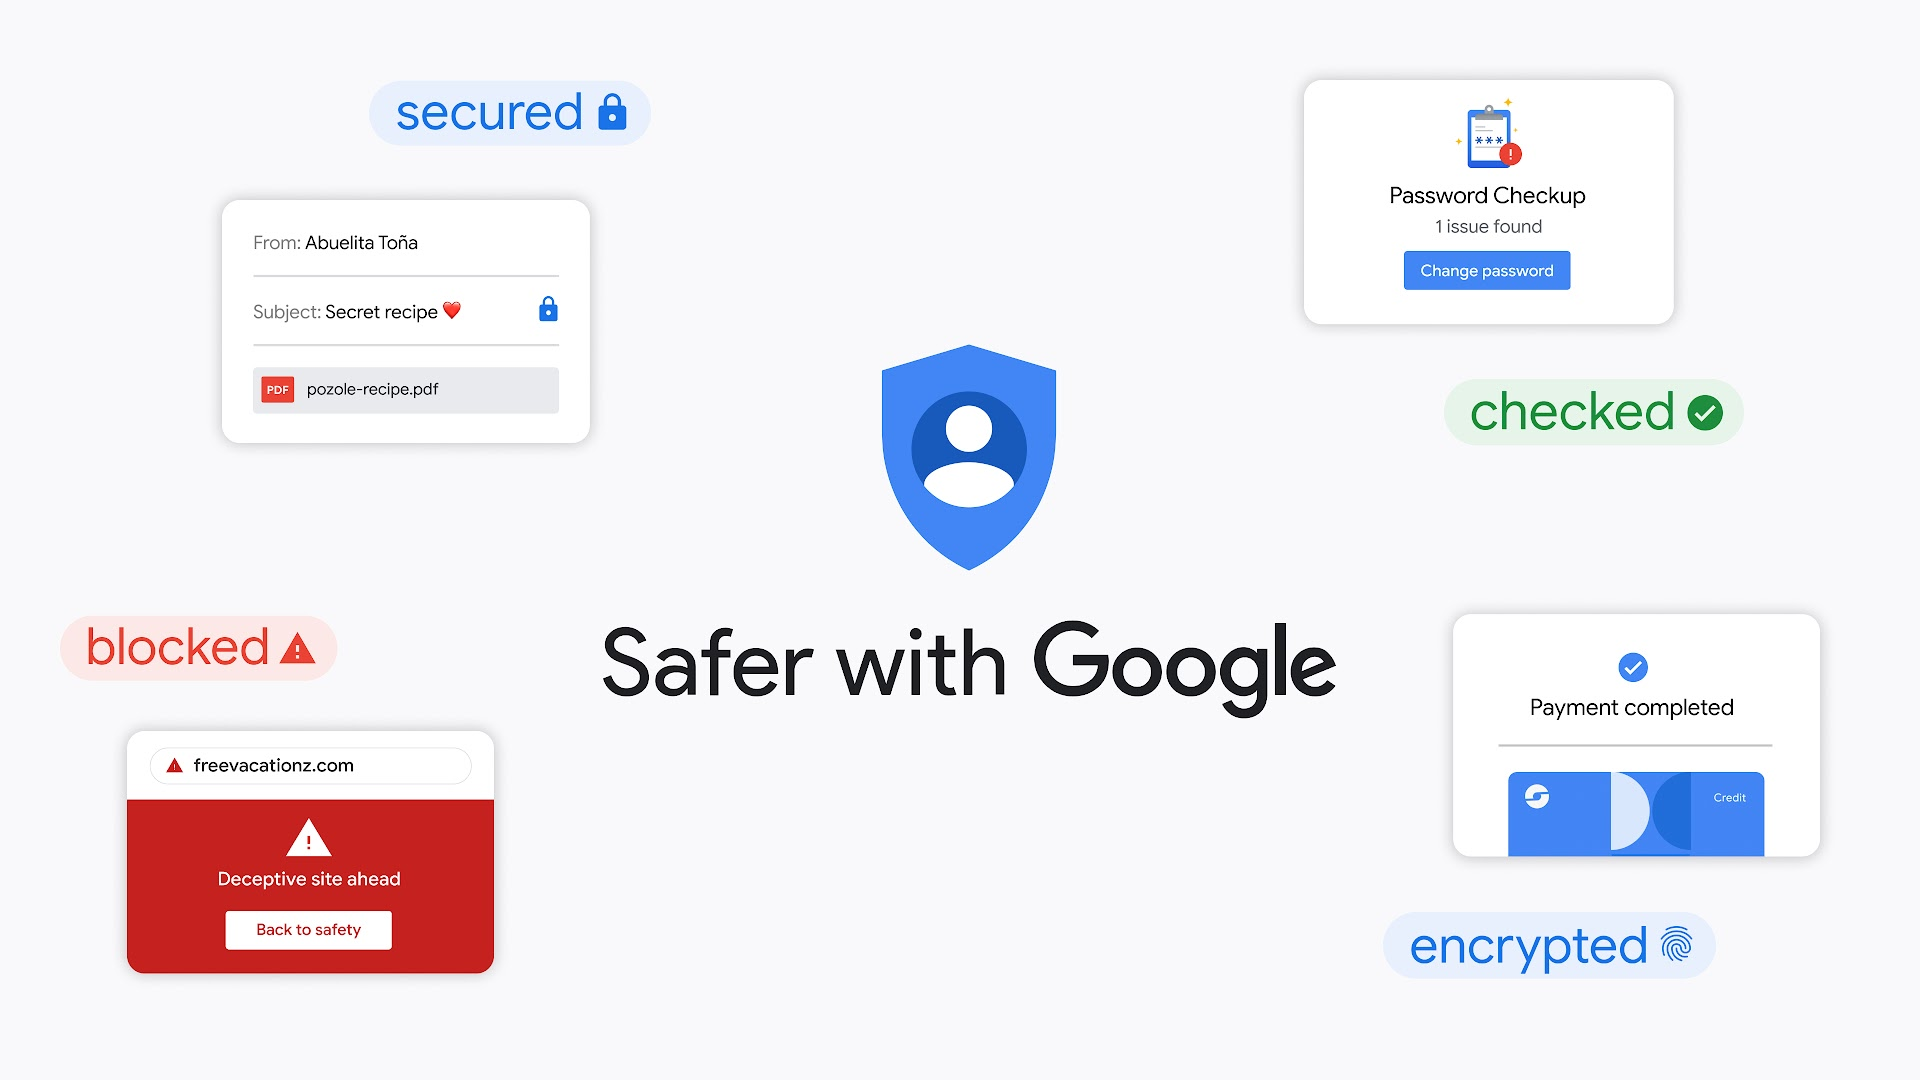 Safer with Google lock up with privacy and security product UIs